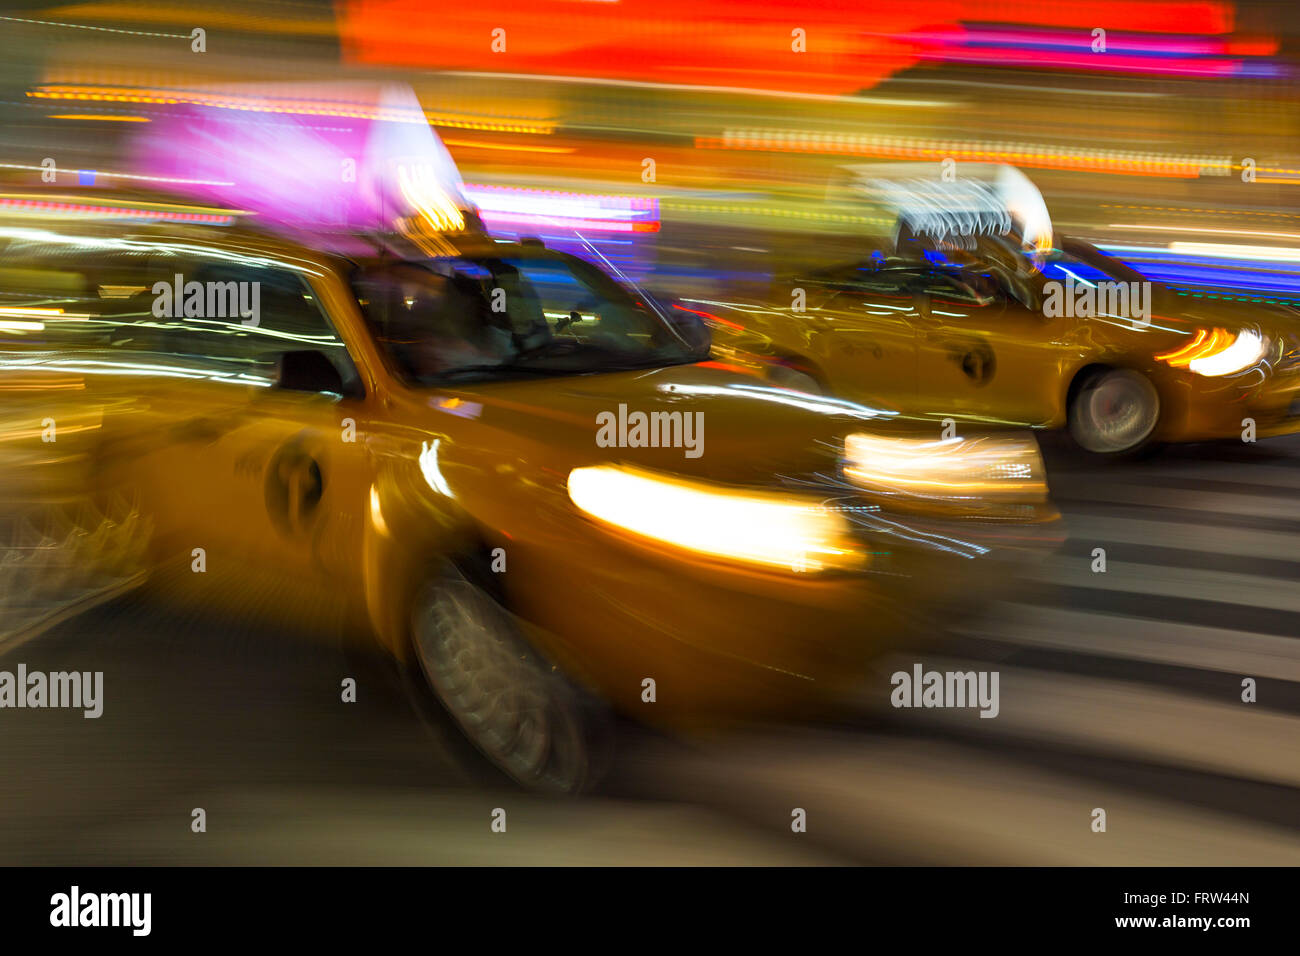 Blurry abstract photo of yellow taxi cabs in motion in Manhattan, New York City - Stock Image